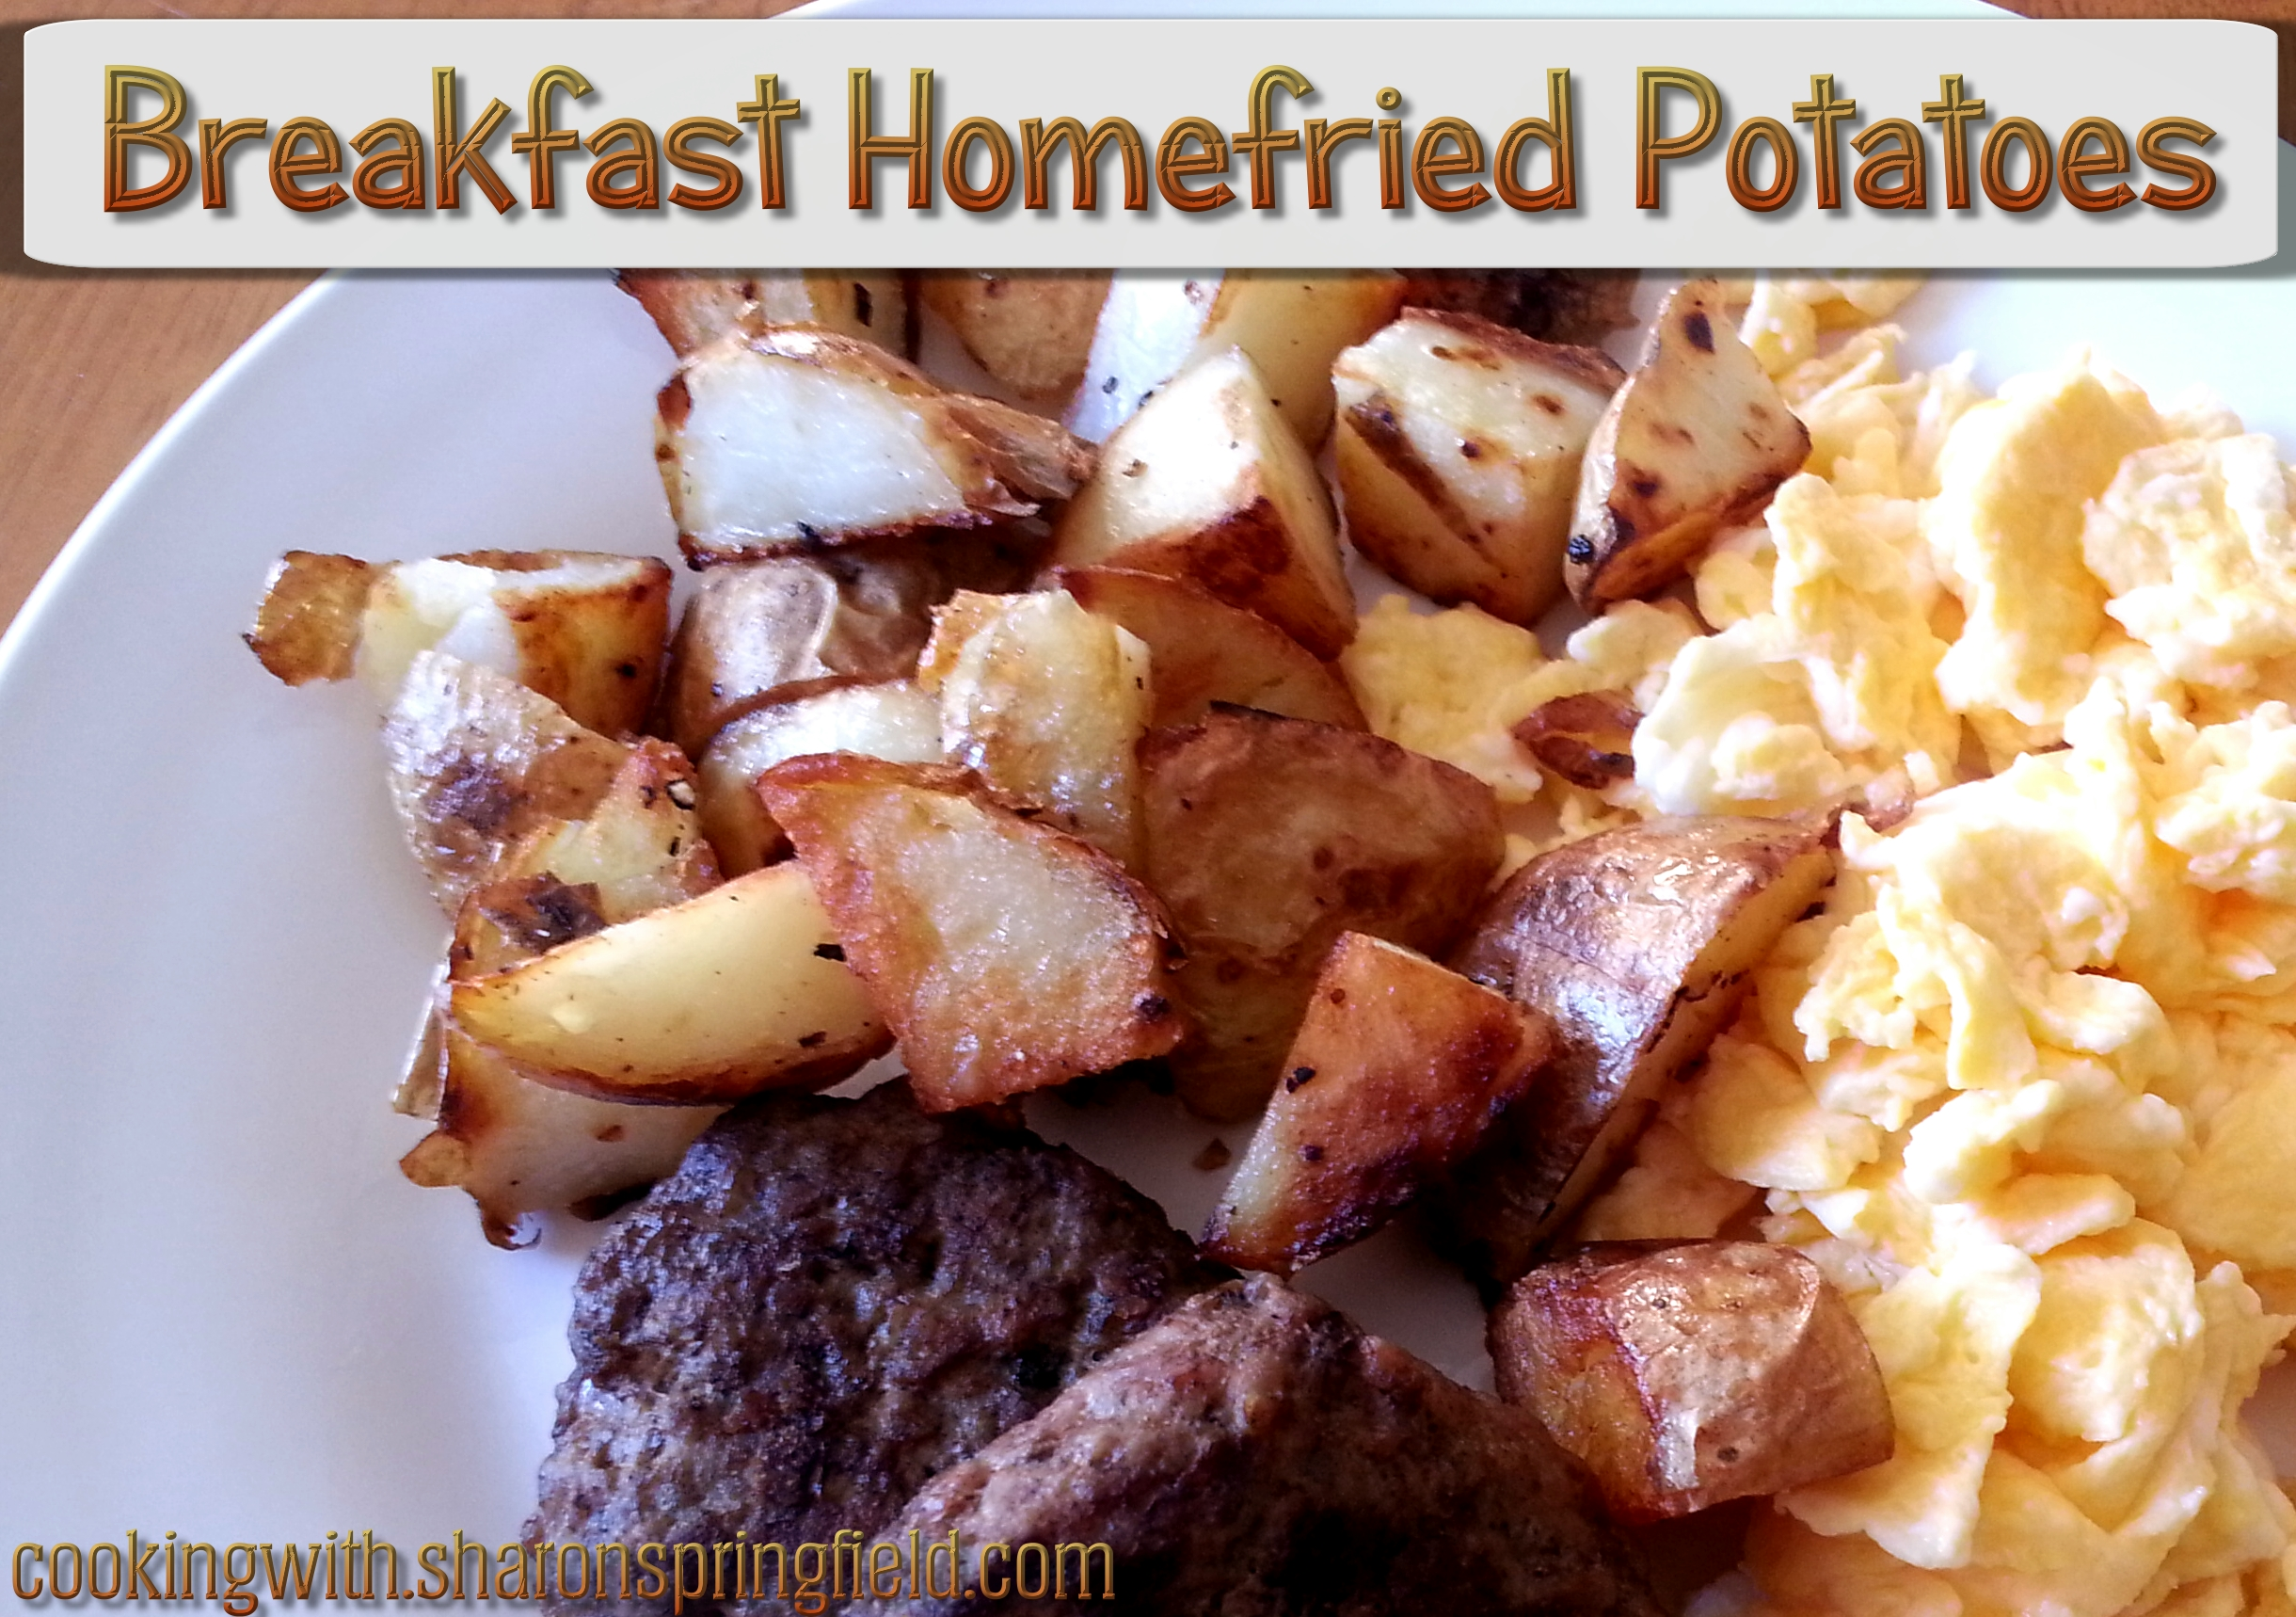 Breakfast Homefries - Homefried Potatoes